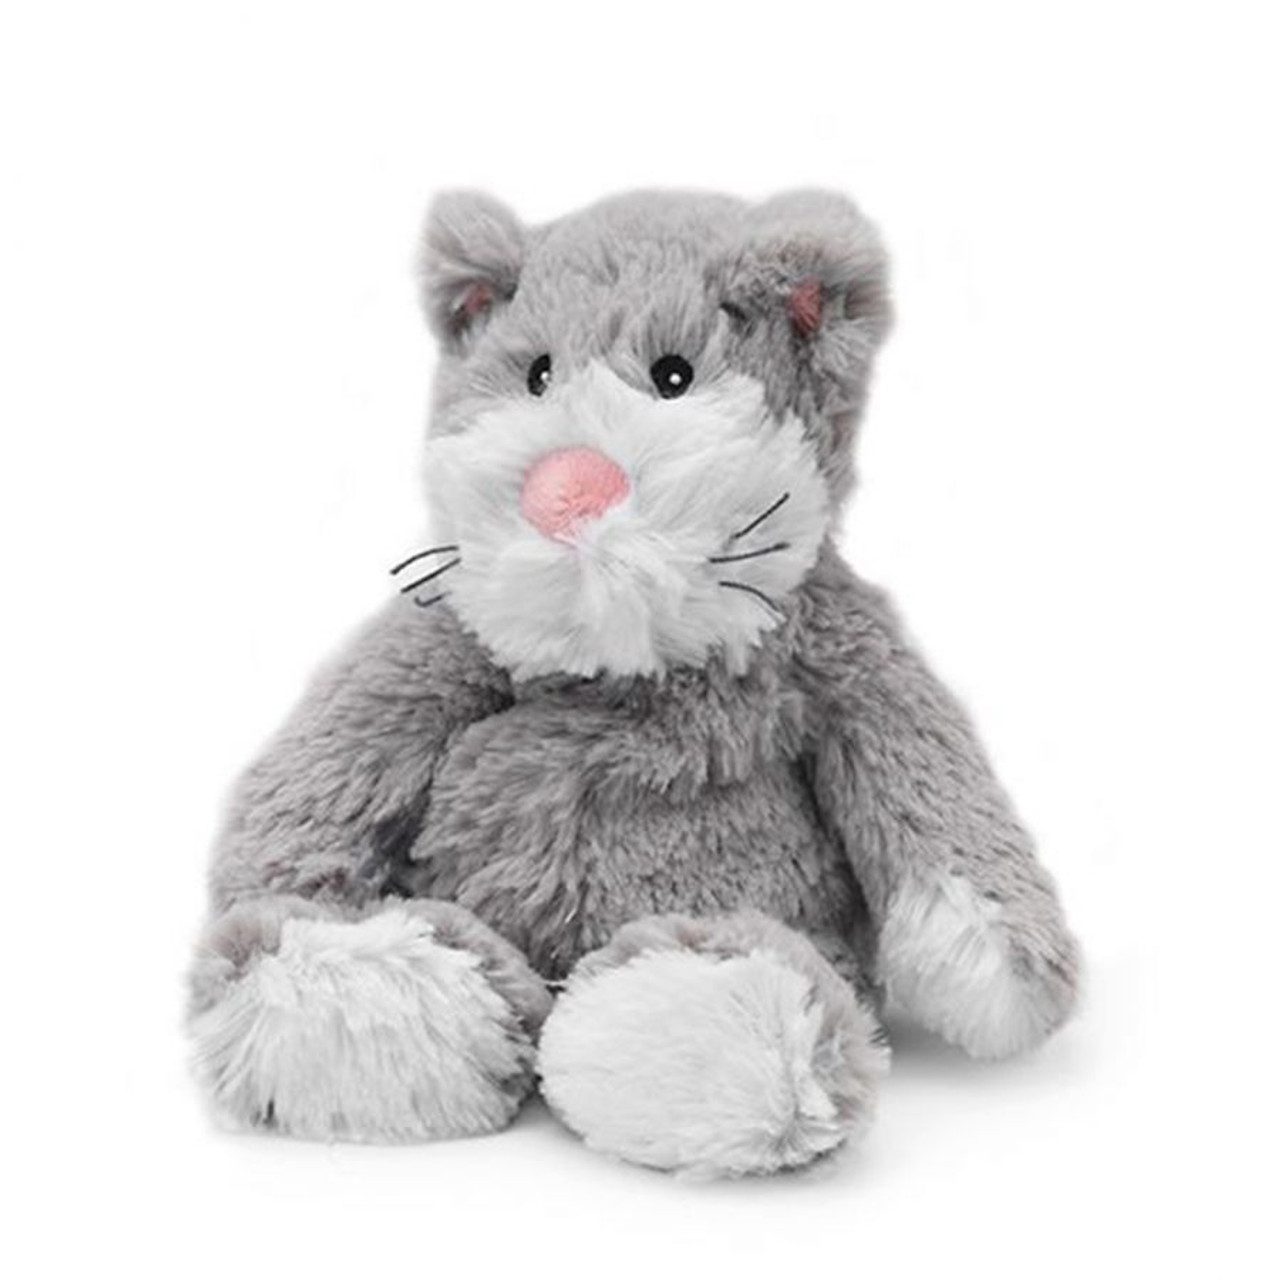 "All age groups can have hours of fun using their Warmies® Cozy Plush Junior Cat, knowing that they can be warm all night long.   The 9"" Junior Cat is fully microwavable yet entirely safe to hold tight after taking a bath, putting on PJs, and heading up the stairs to bed."